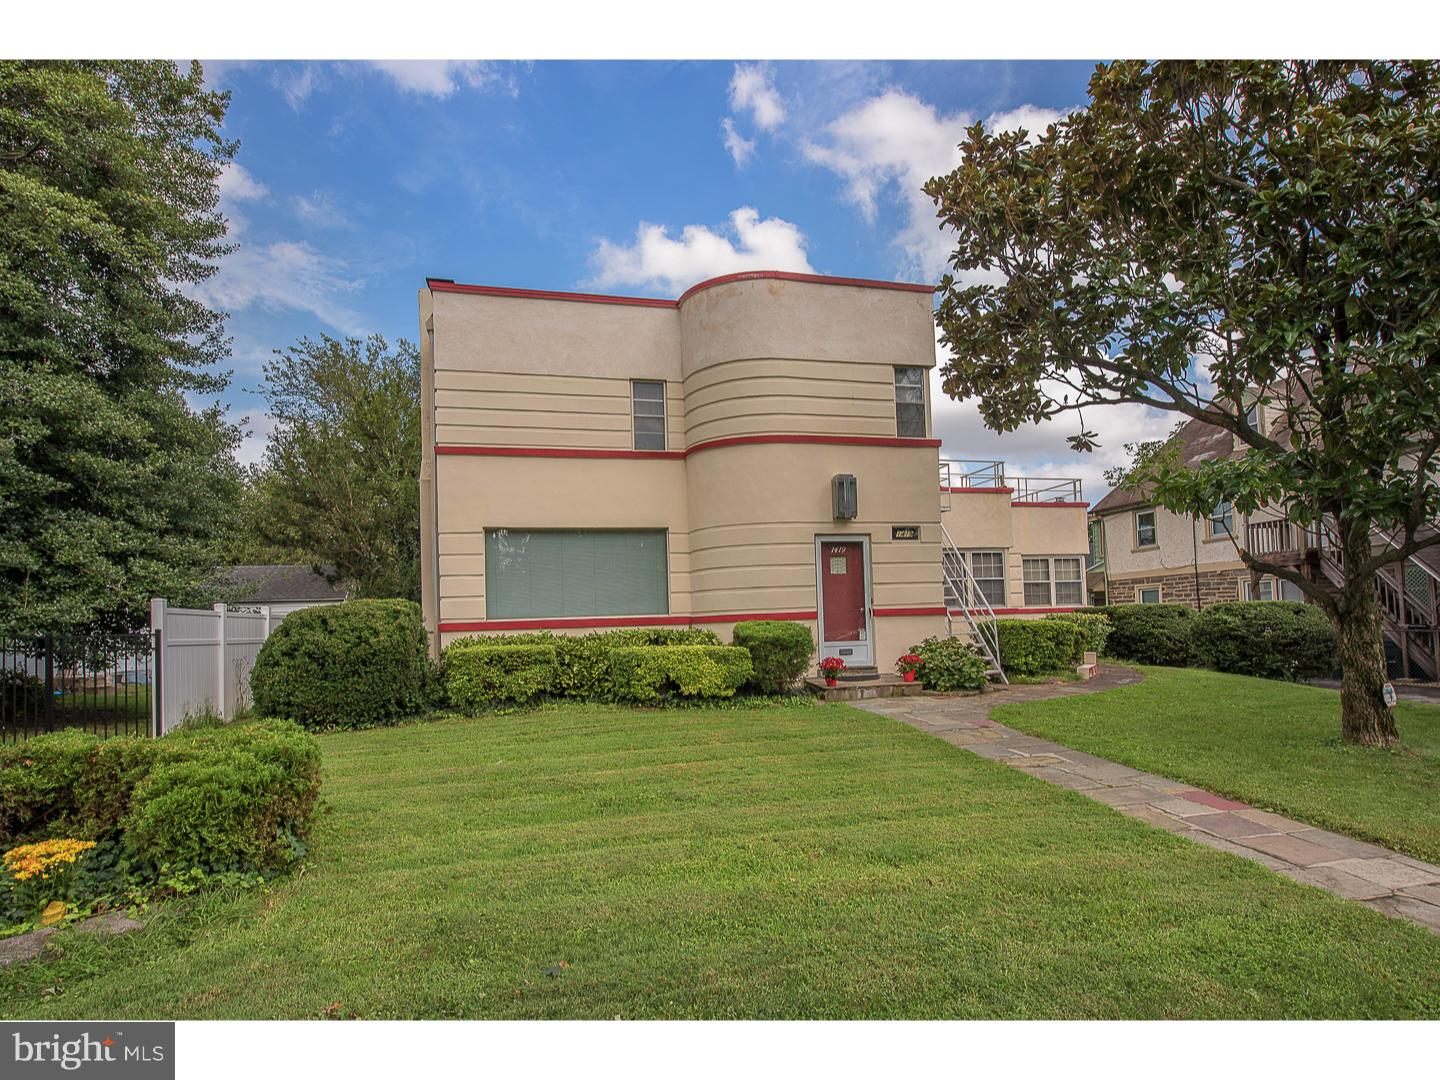 1419 DARBY ROAD, HAVERTOWN, PA 19083